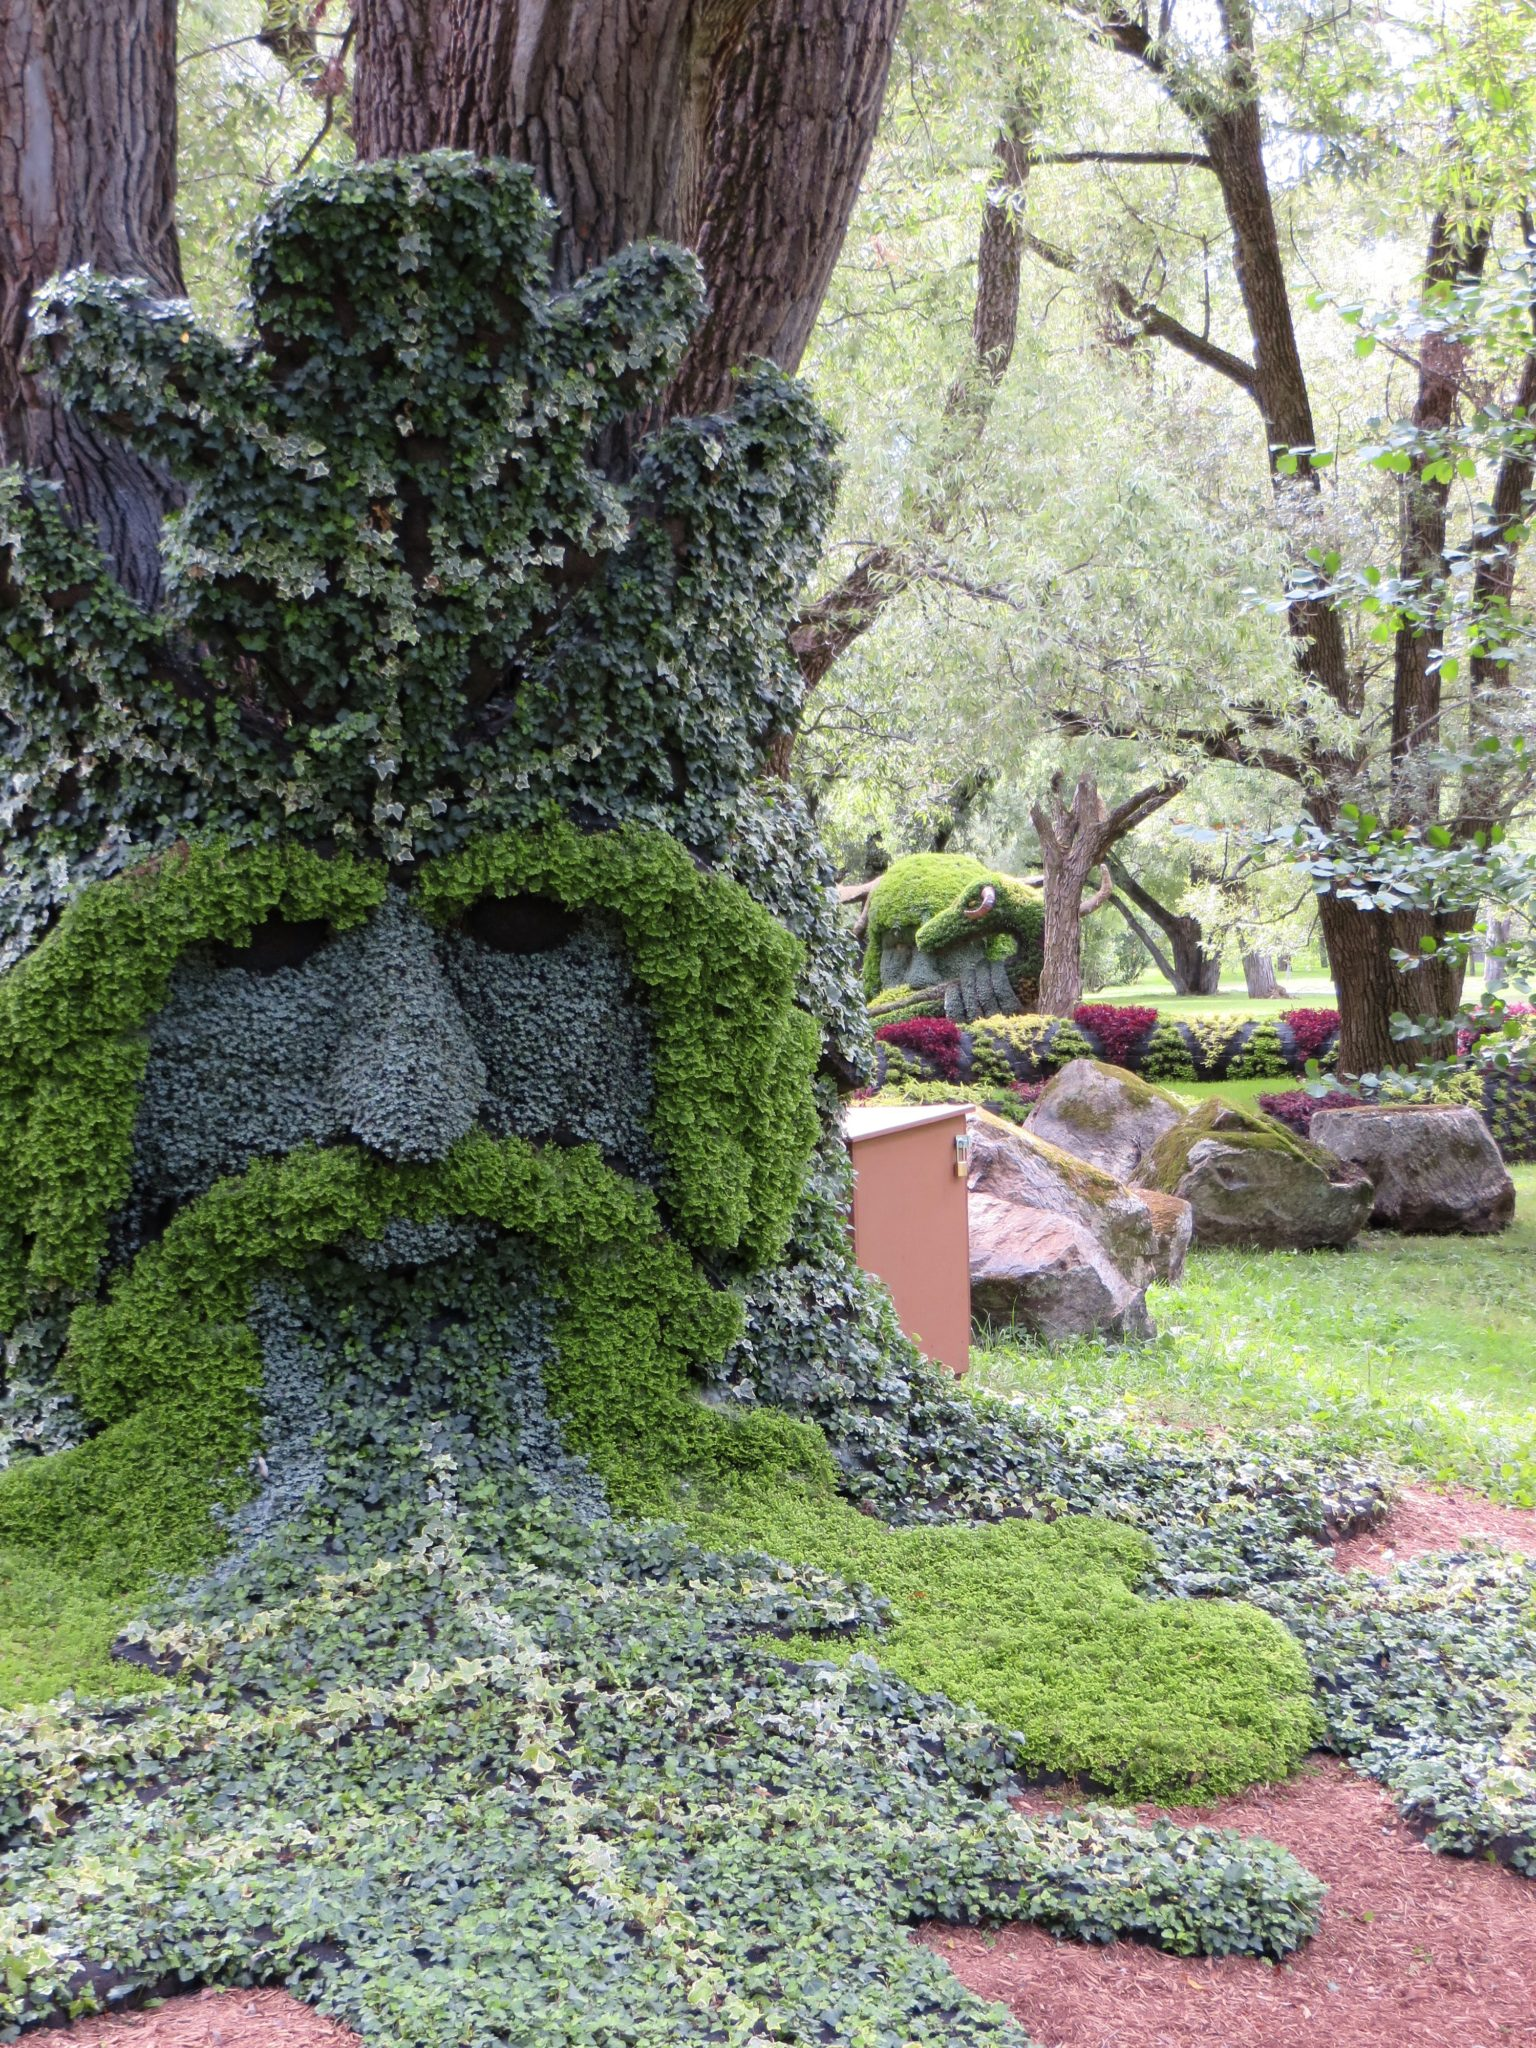 Green Man, Spirits of the Forest from Canada.